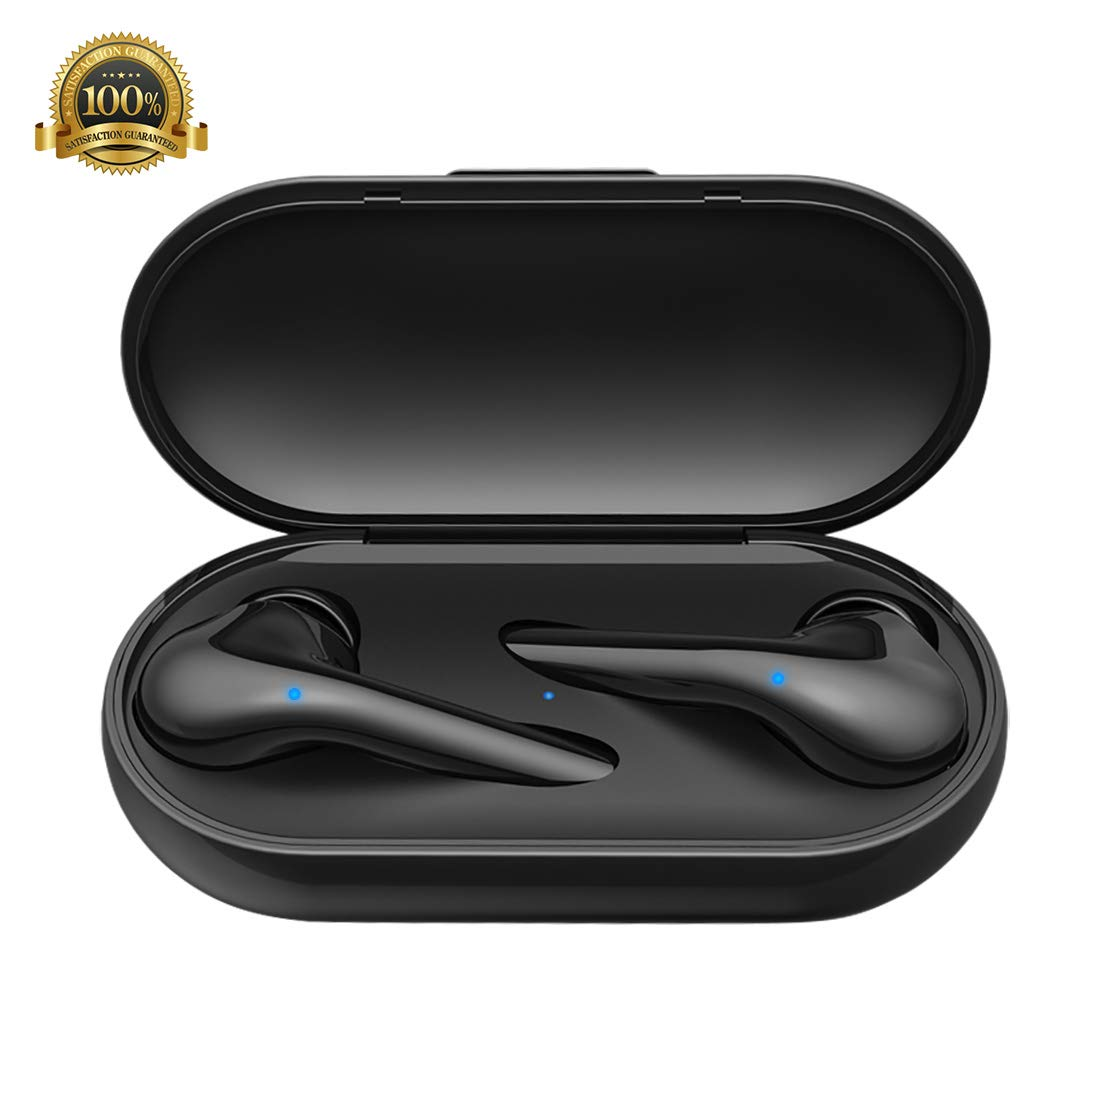 LucBuy True Wireless Earbuds, TWS Bluetooth 5.0 Earphone Stereo Built-in Mic with Charging Case,Touch Switch,Auto Power-on,in-Ear Noise Cancelling Mini Sports Headphones, Waterproof Headsets